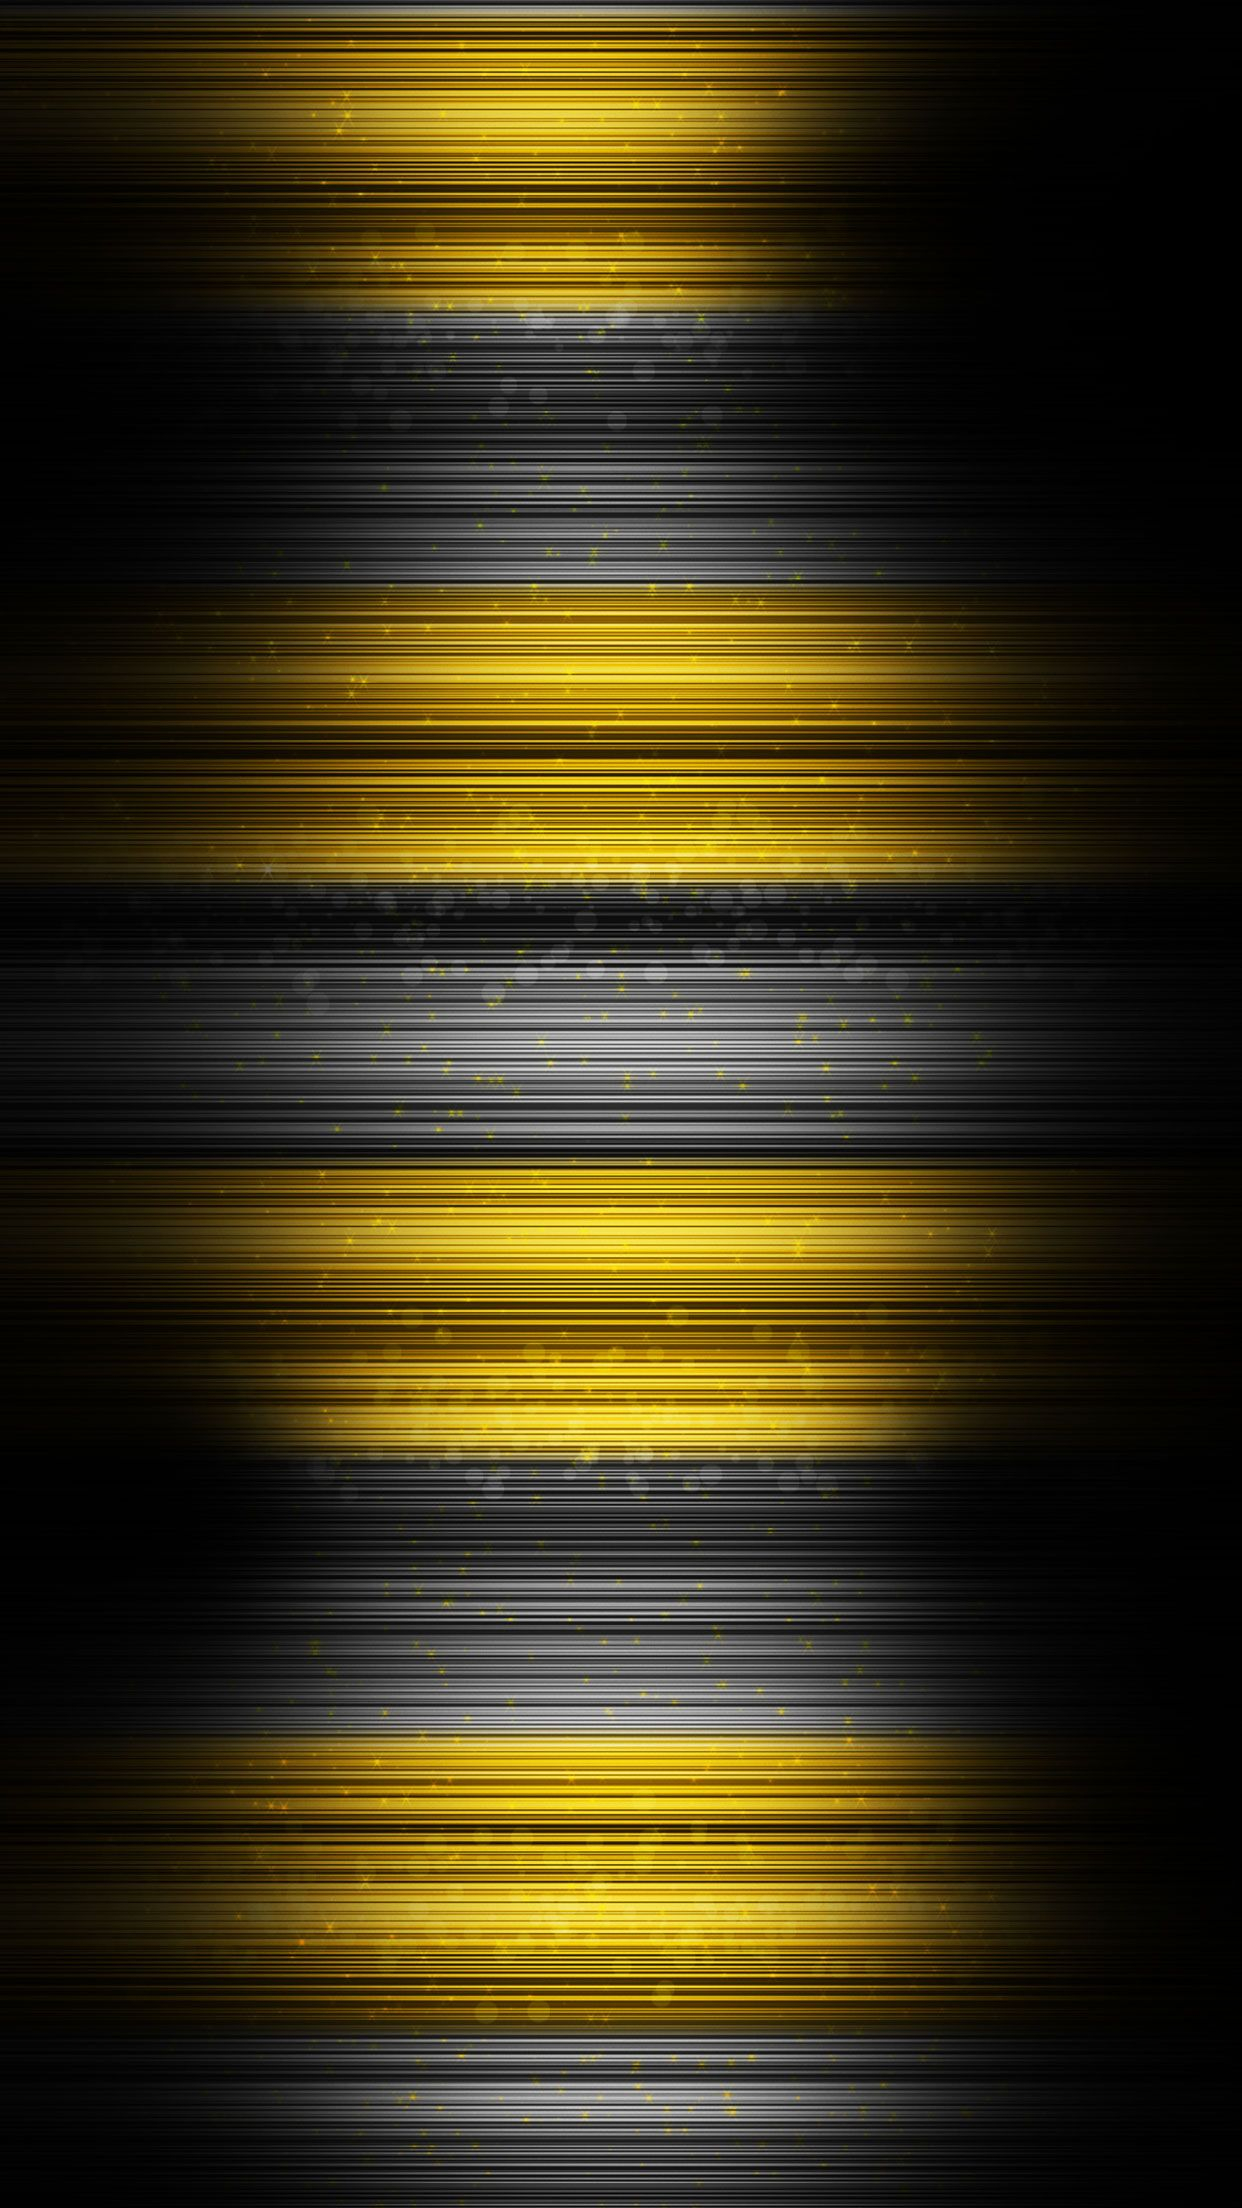 yellow and black abstract wallpaper for iphone and android abstract wallpaper more